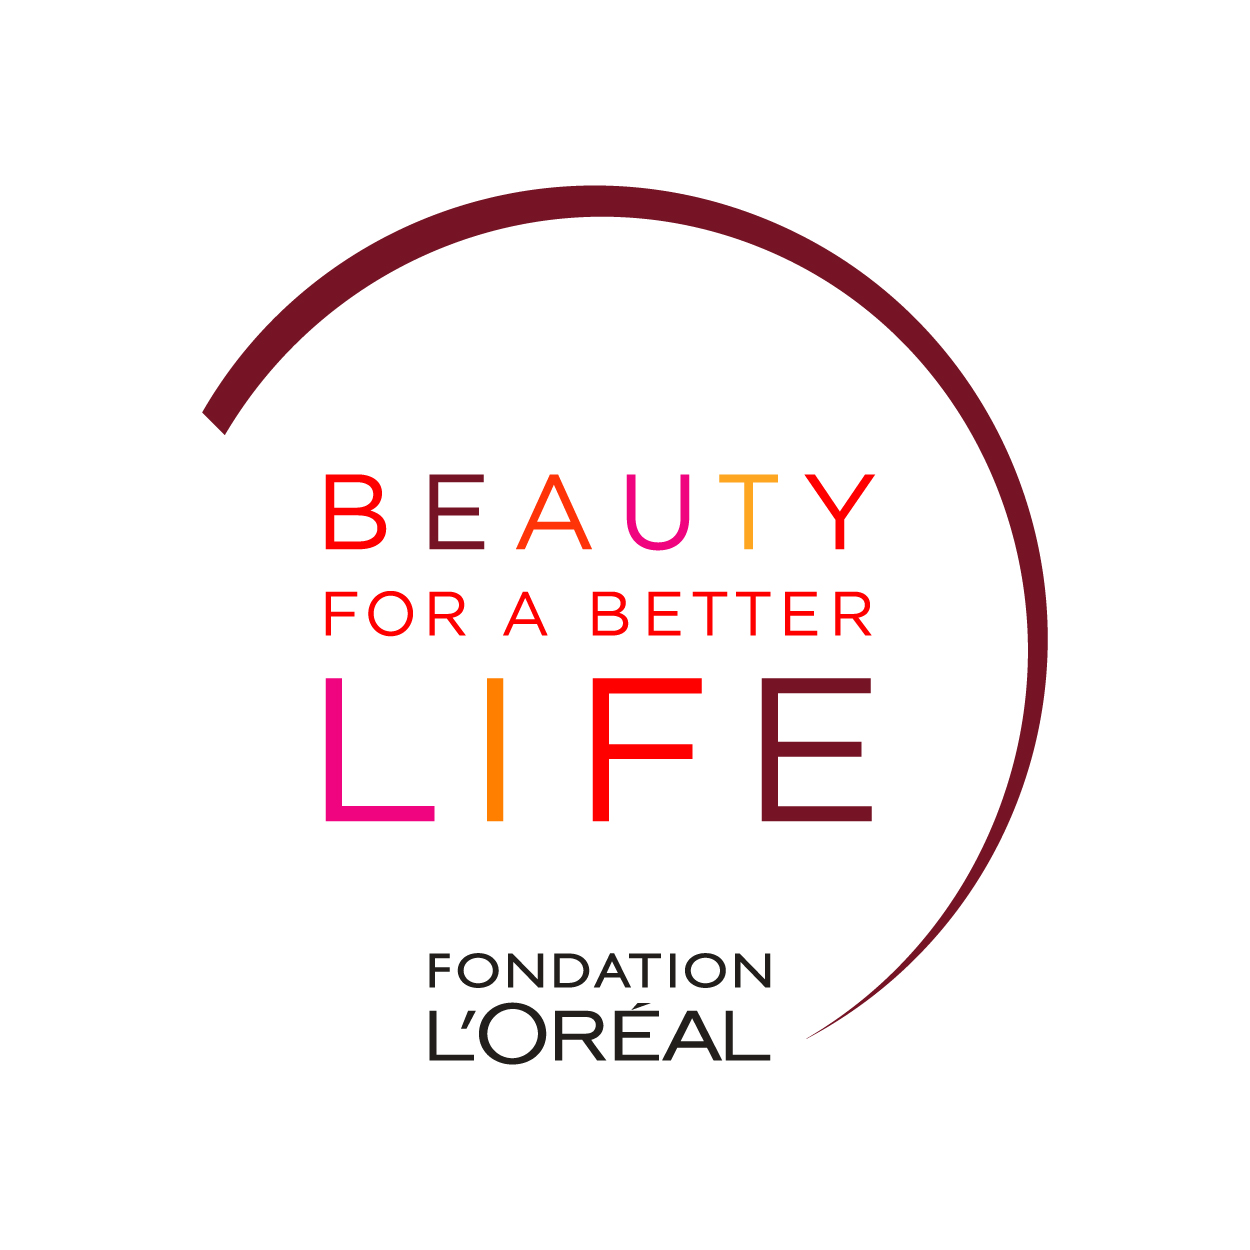 Logo Beauty for a Better life Fondation L'OREAL 1703 Factory